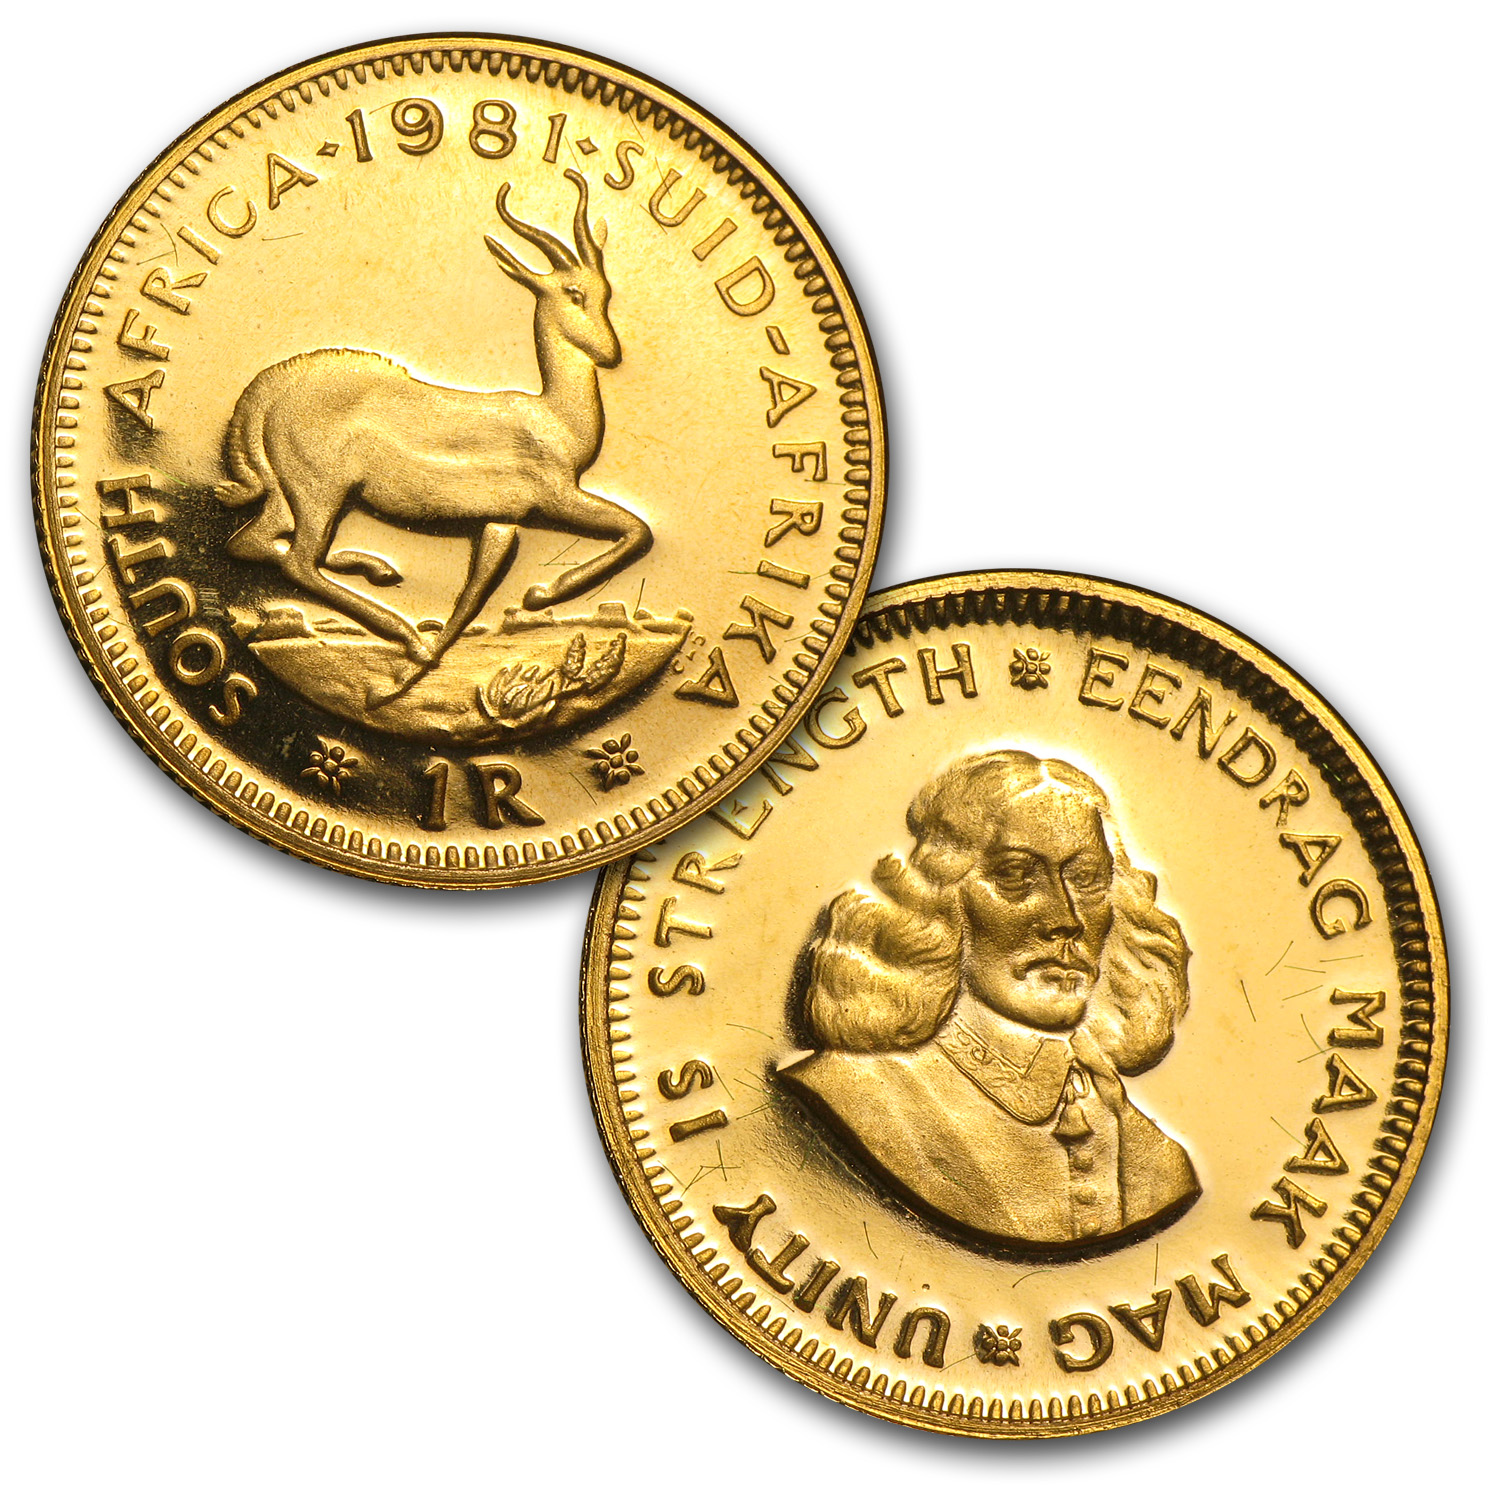 1981 South Africa 2-Coin Gold Proof Set (1 Rand & 2 Rand)